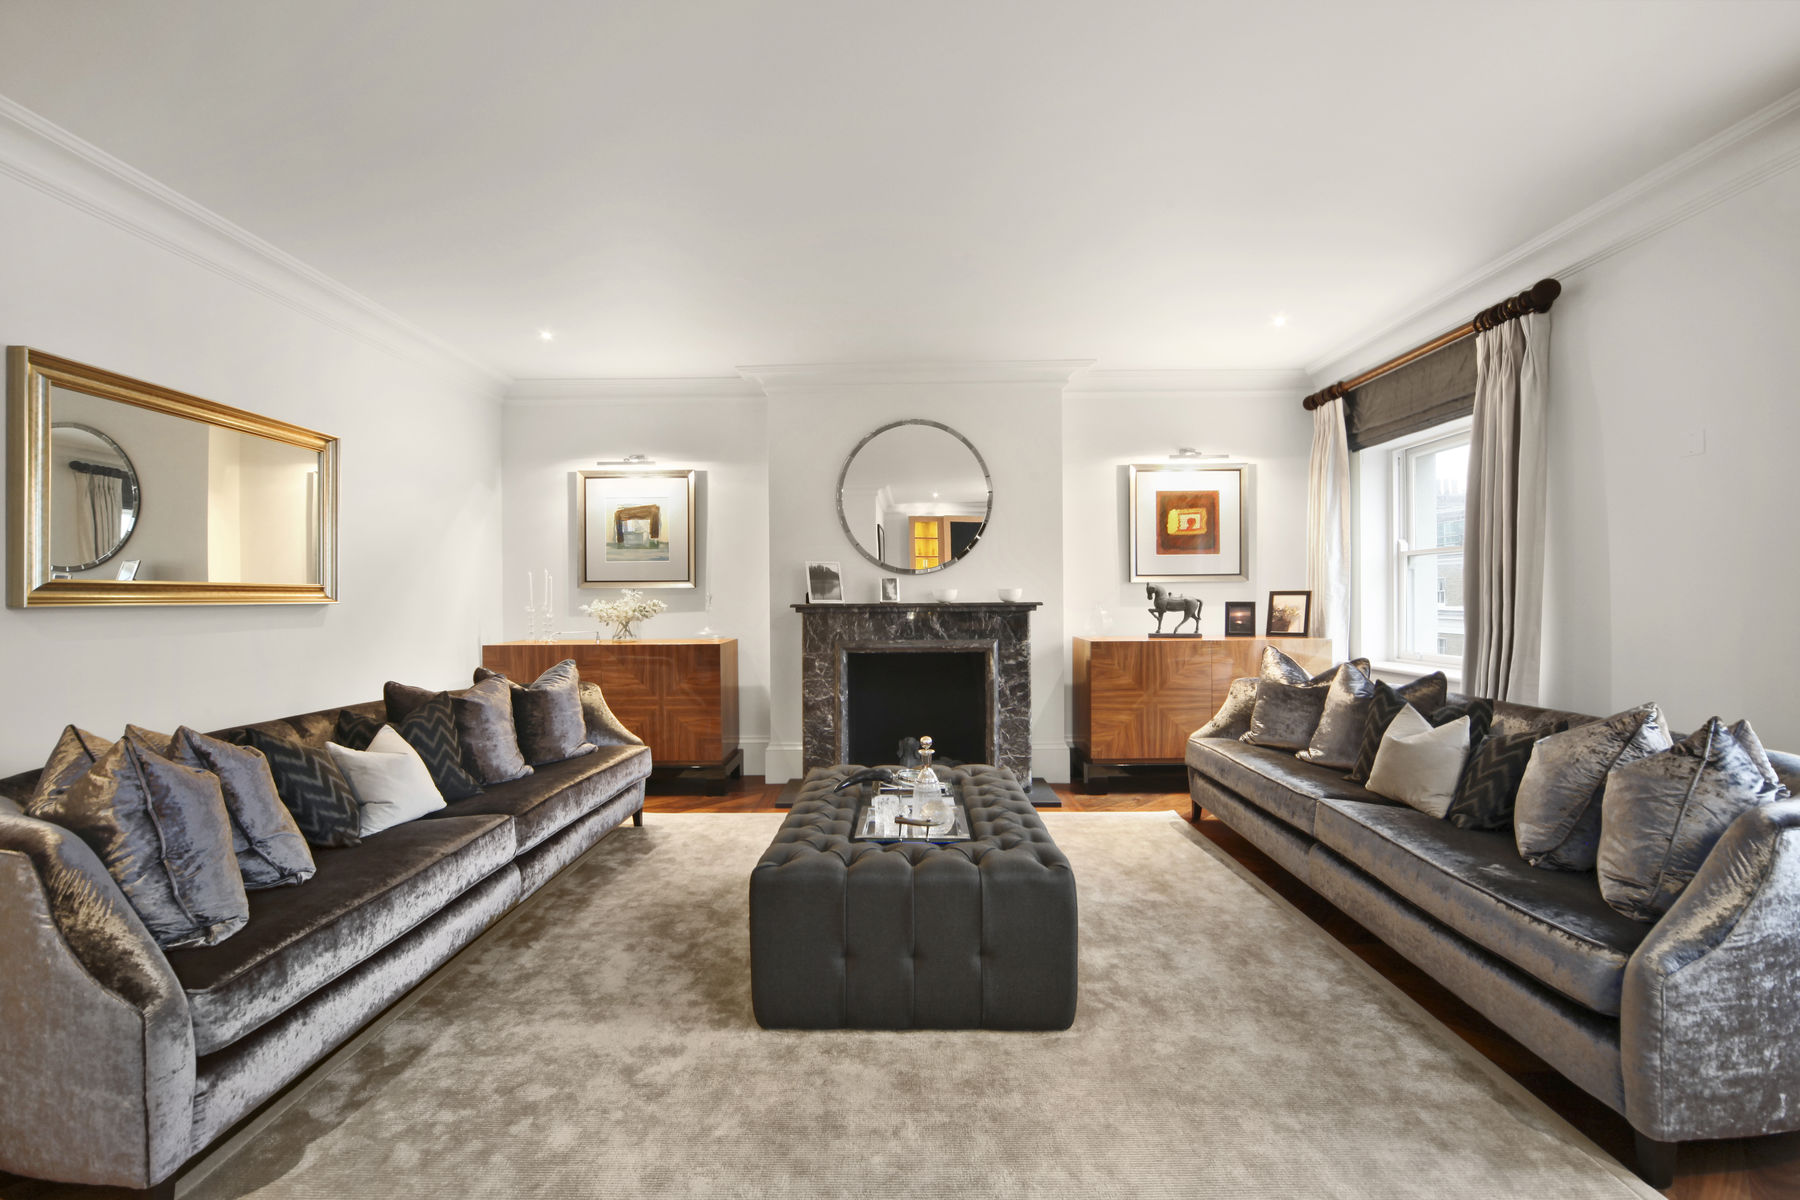 Single Family Home for Sale at Eaton Place London, England, United Kingdom